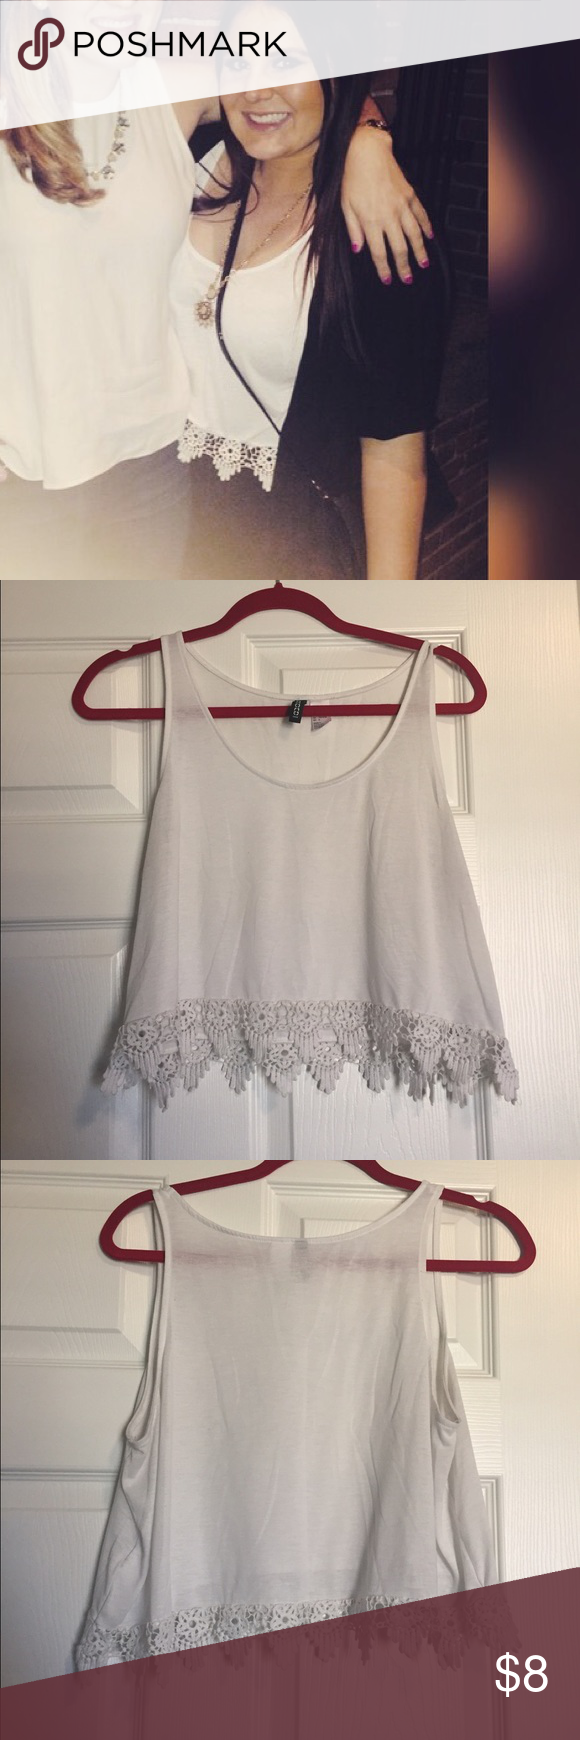 White Crop Top Great condition H&M Tops Crop Tops